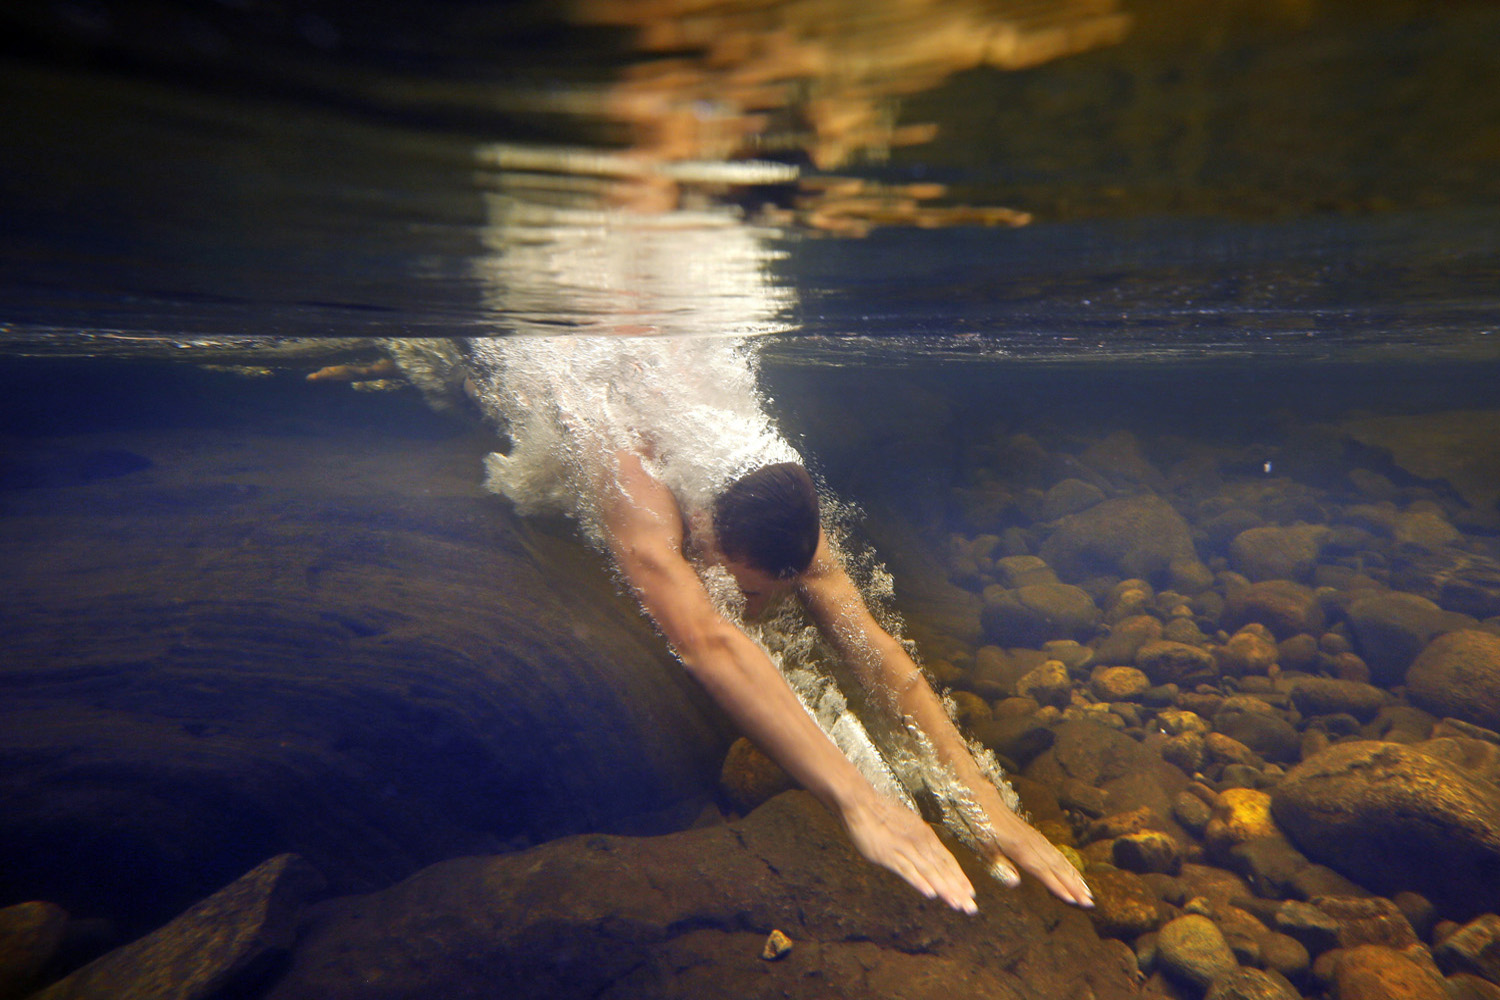 Russell Norris, 15, of Tylertown, Miss., dives into the chilly Swift River at Coos Canyon in Byron, Maine.